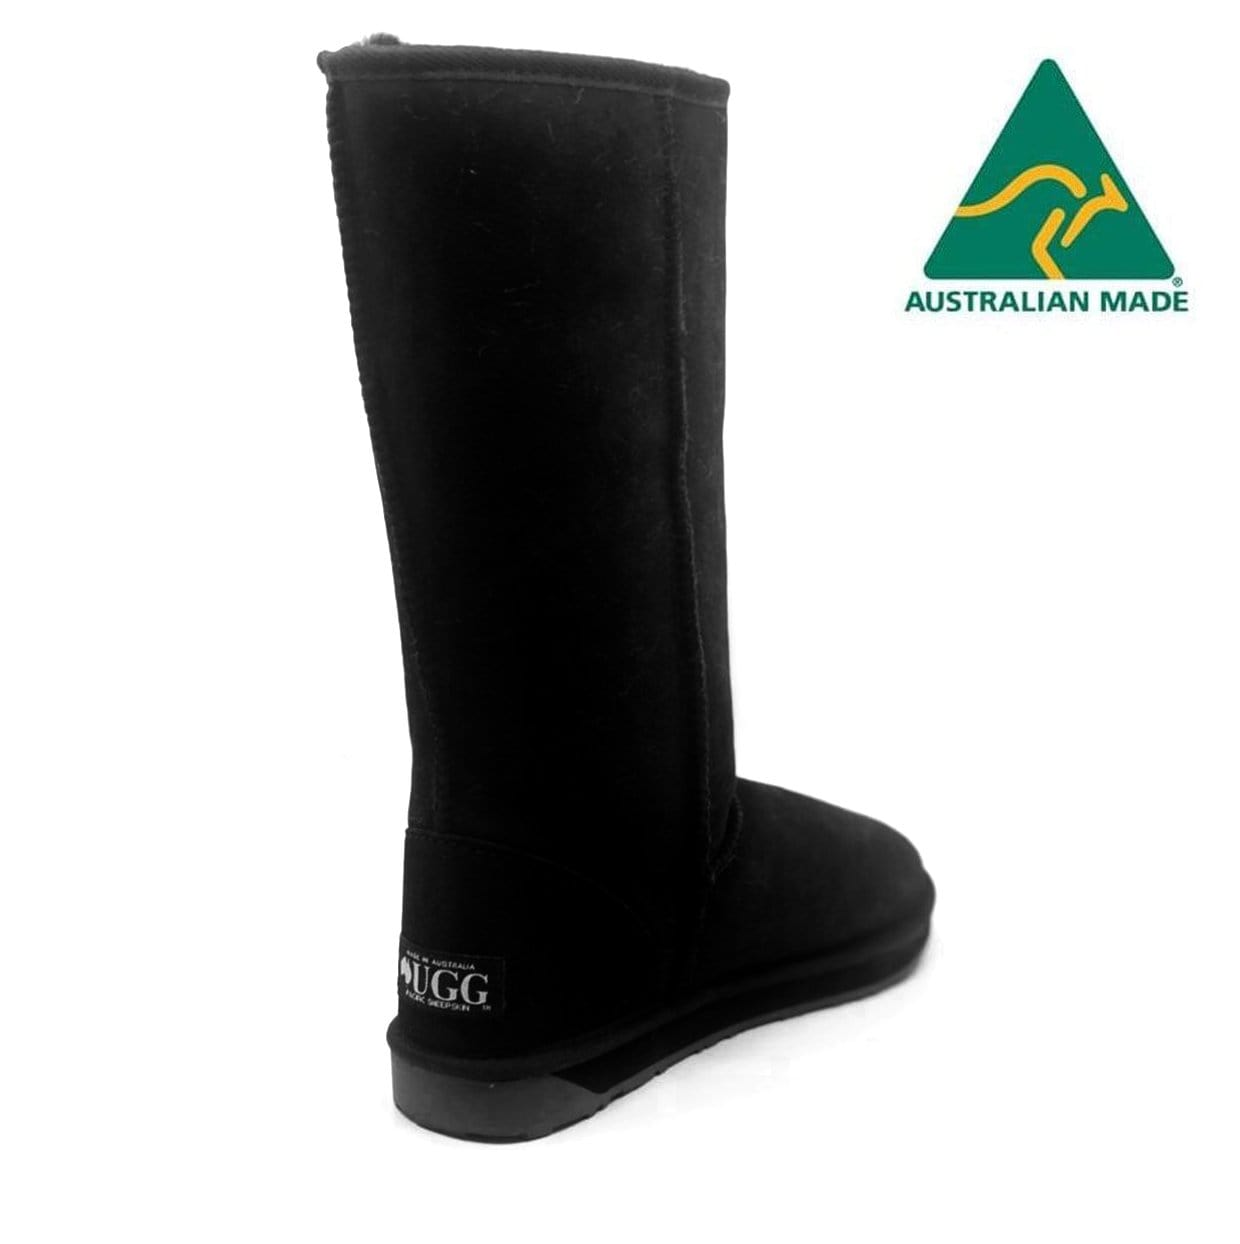 UGG Premium Tall Classic - Made in Australia